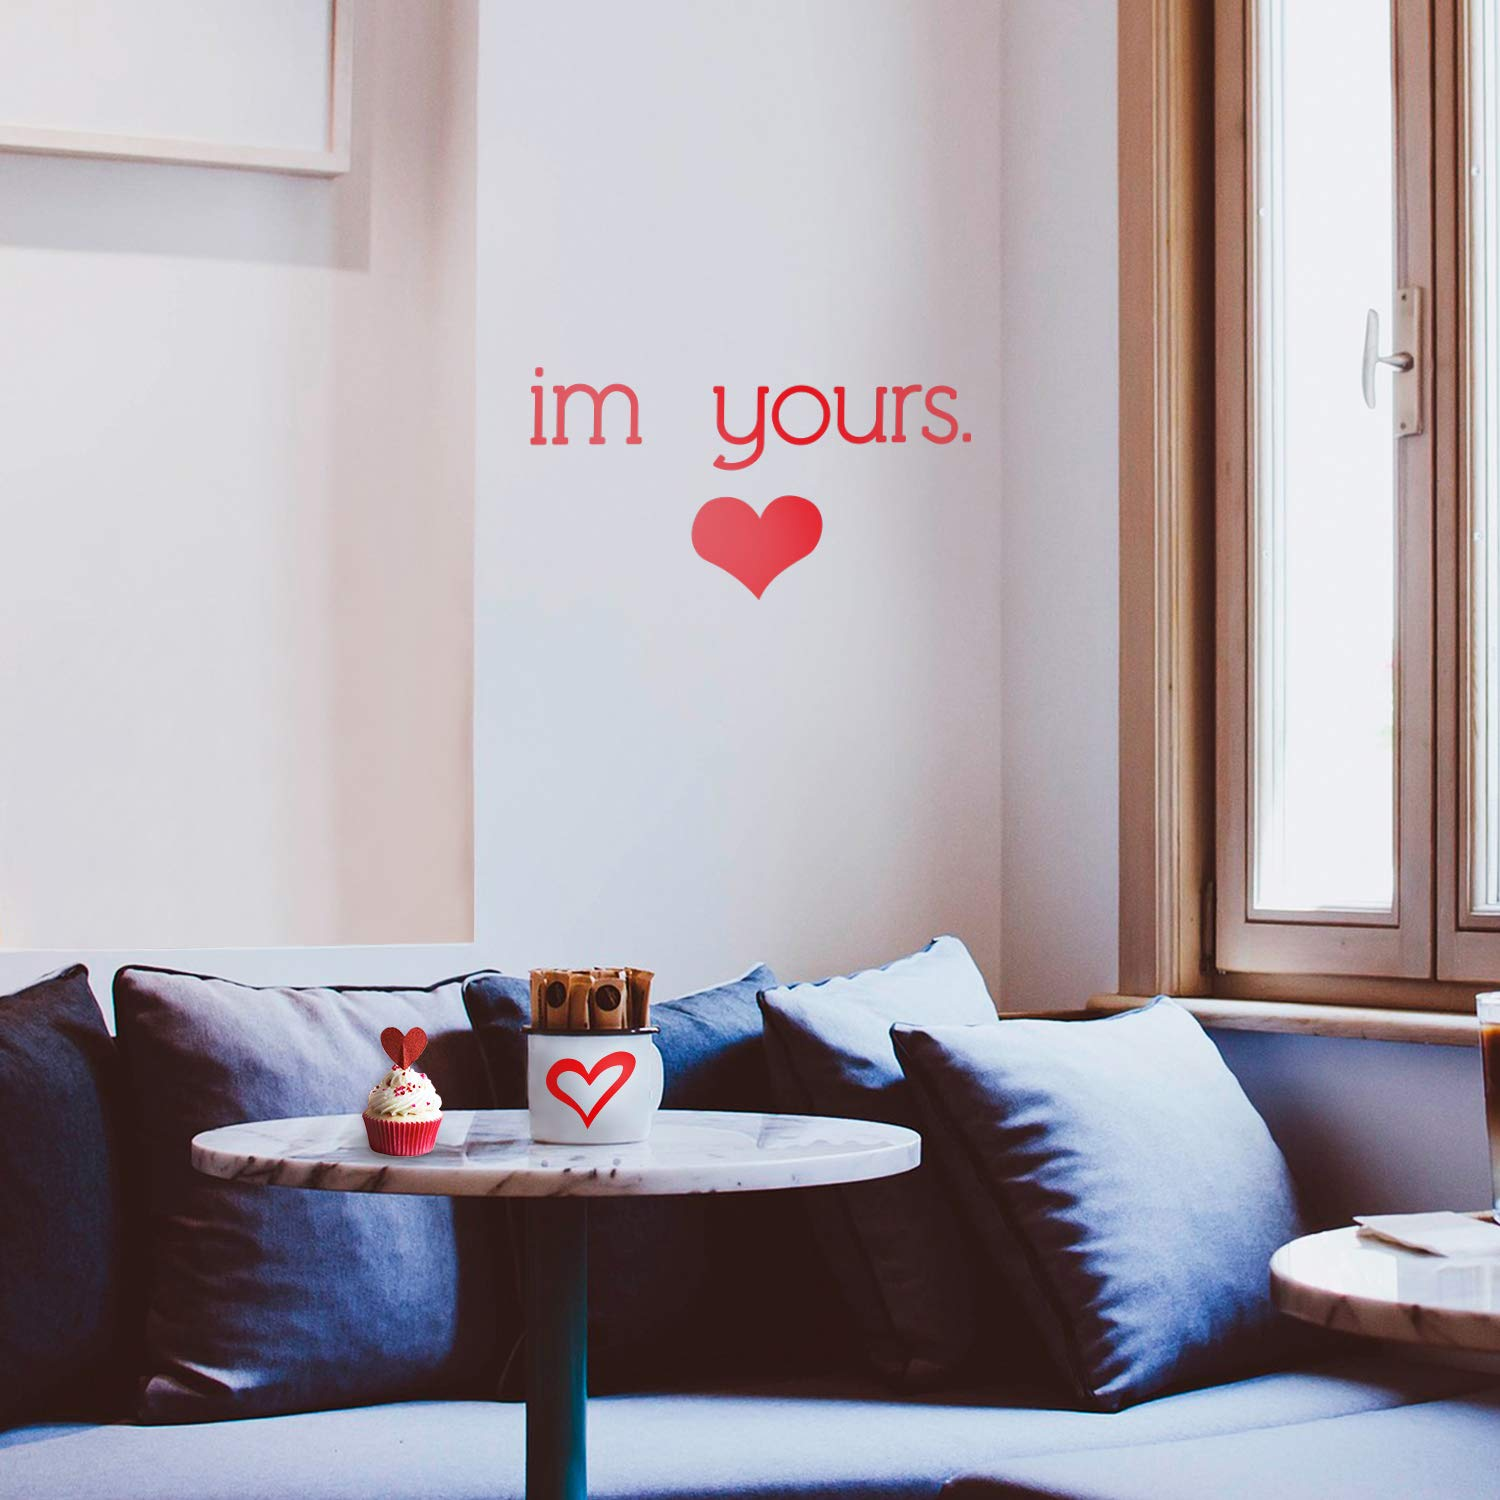 Im Yours with Heart Indoor Outdoor Positive Household Couples Apartment Decor 12 x 23 12 x 23, Red Valentines Home Living Room Bedroom Sticker Valentines Day Vinyl Wall Art Decal